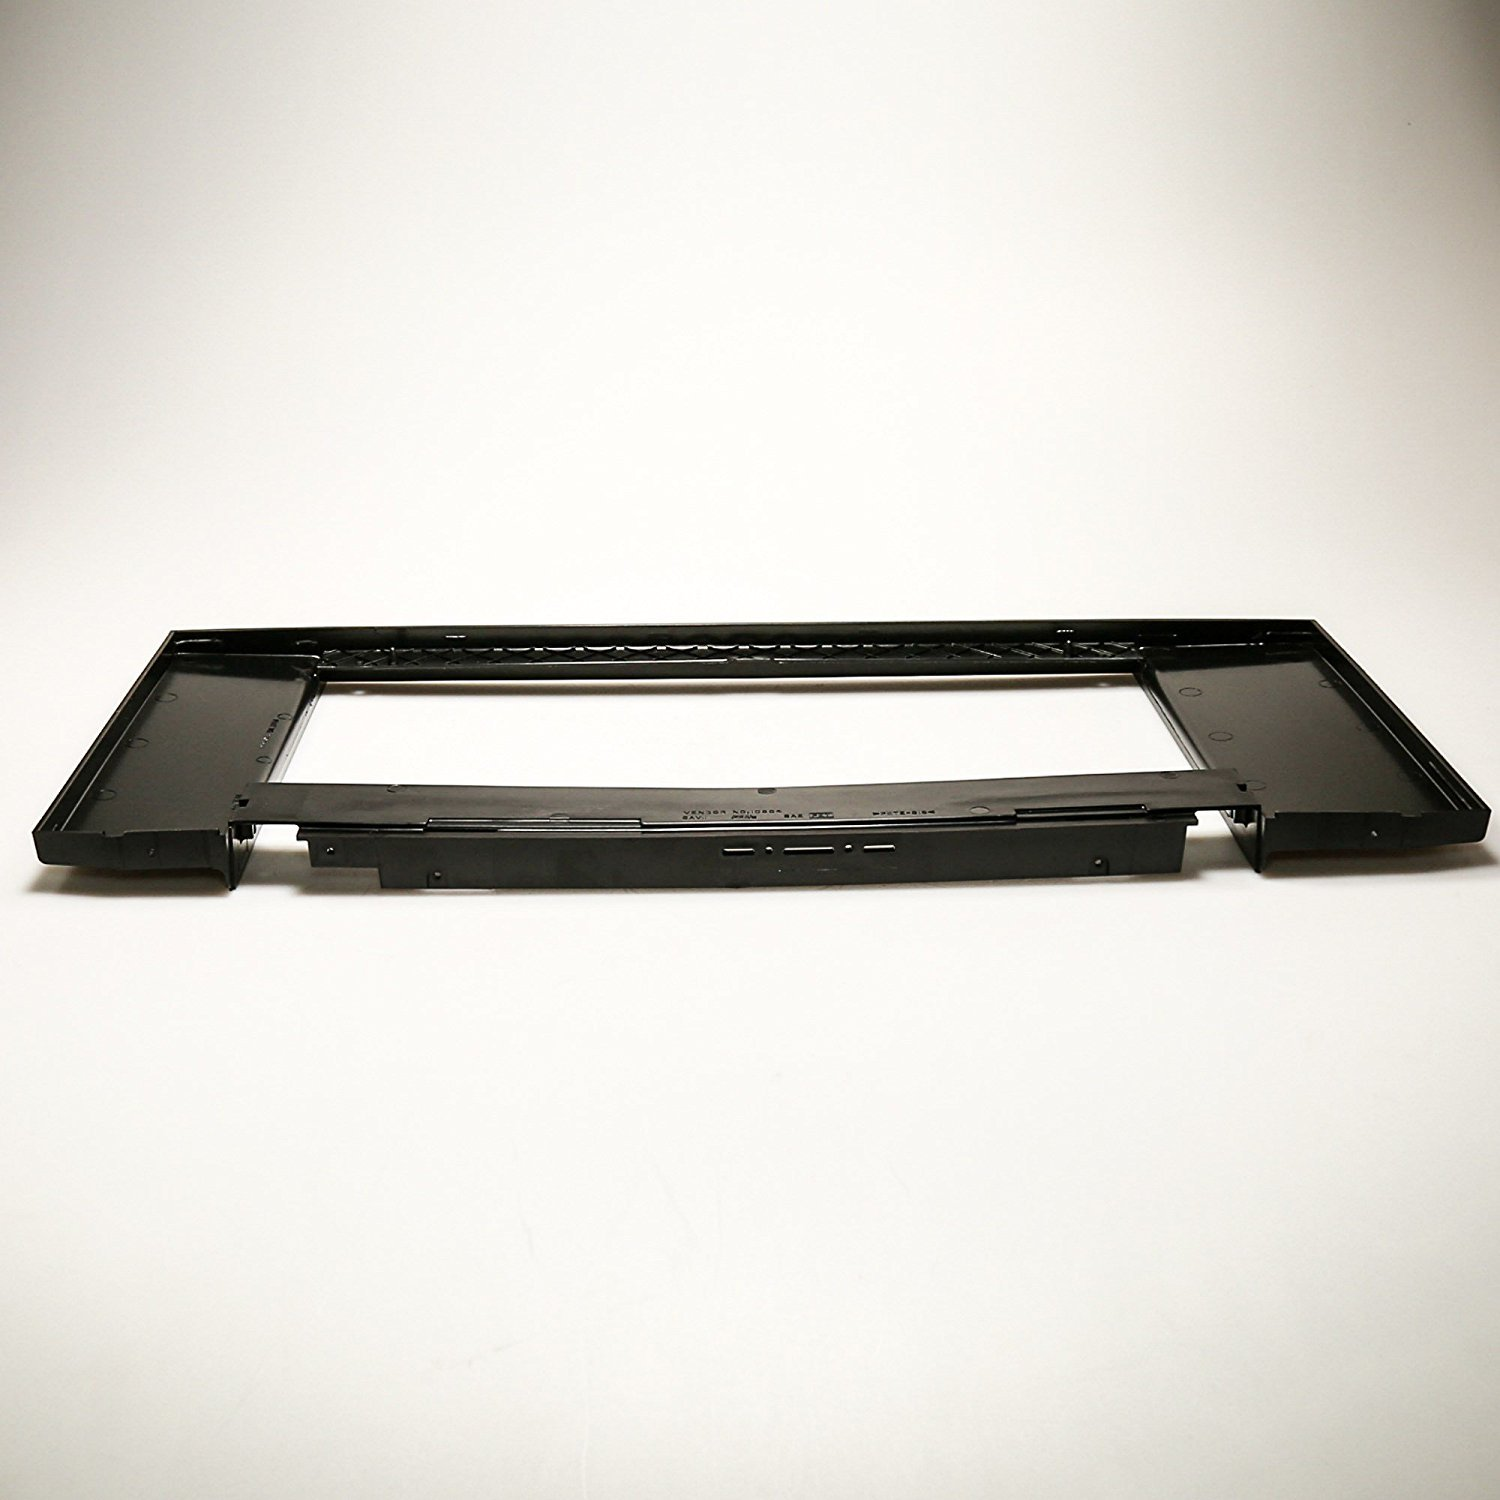 Kitchenaid WP8303556 Wall Oven Microwave Door Frame